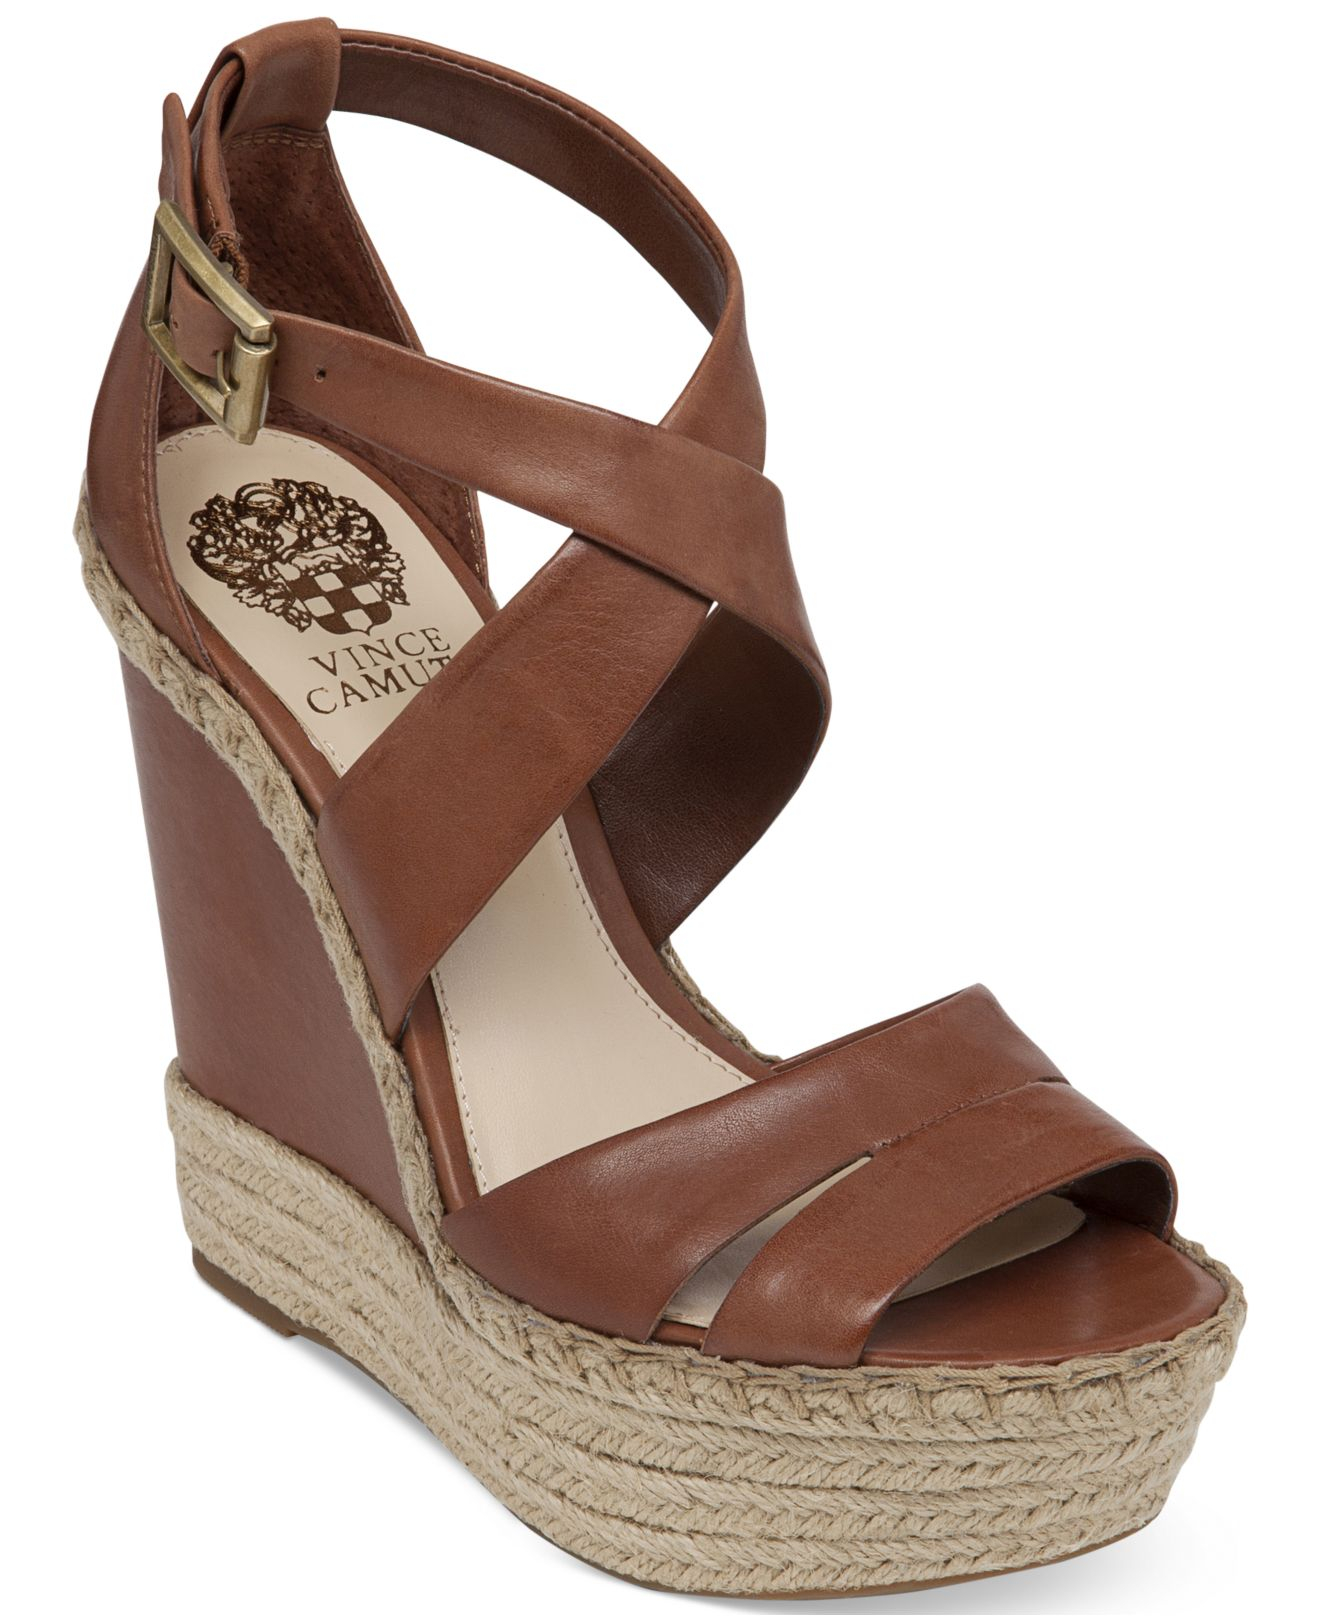 6aae06330 Vince Camuto Marcela Espadrille Platform Wedge Sandals in Brown - Lyst